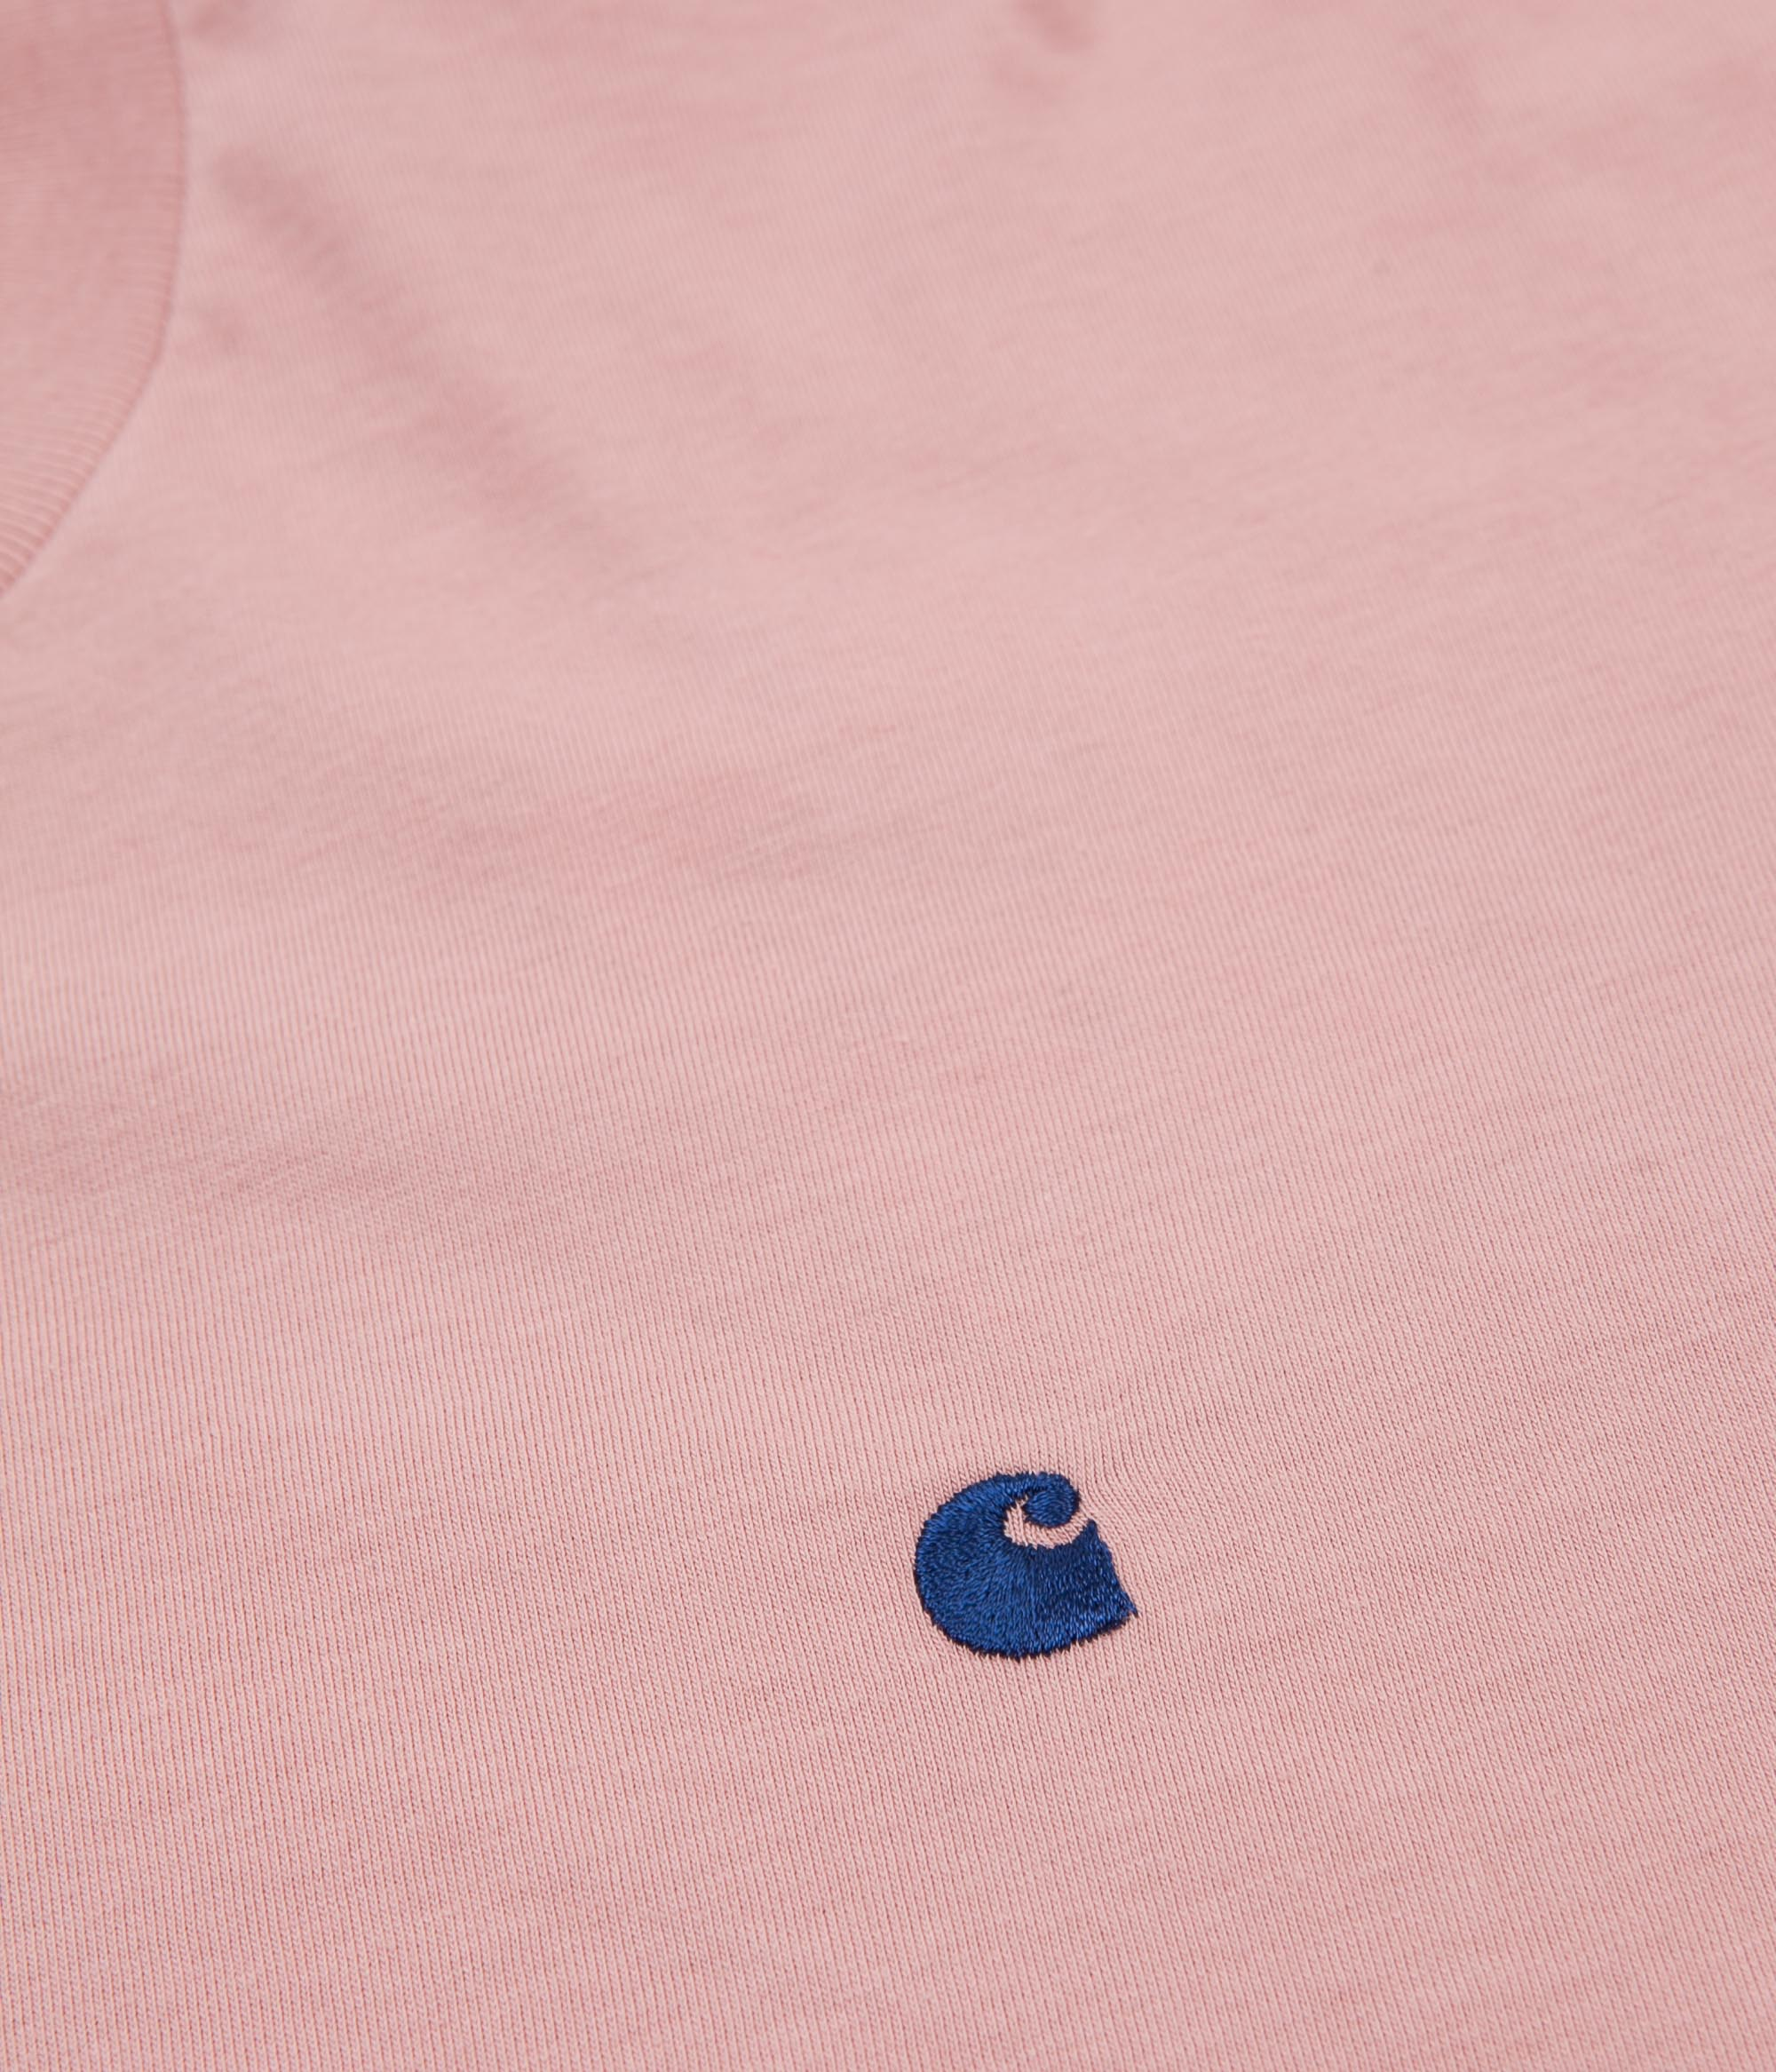 Carhartt Madison Long Sleeve T-Shirt - Soft Rose / Sapphire